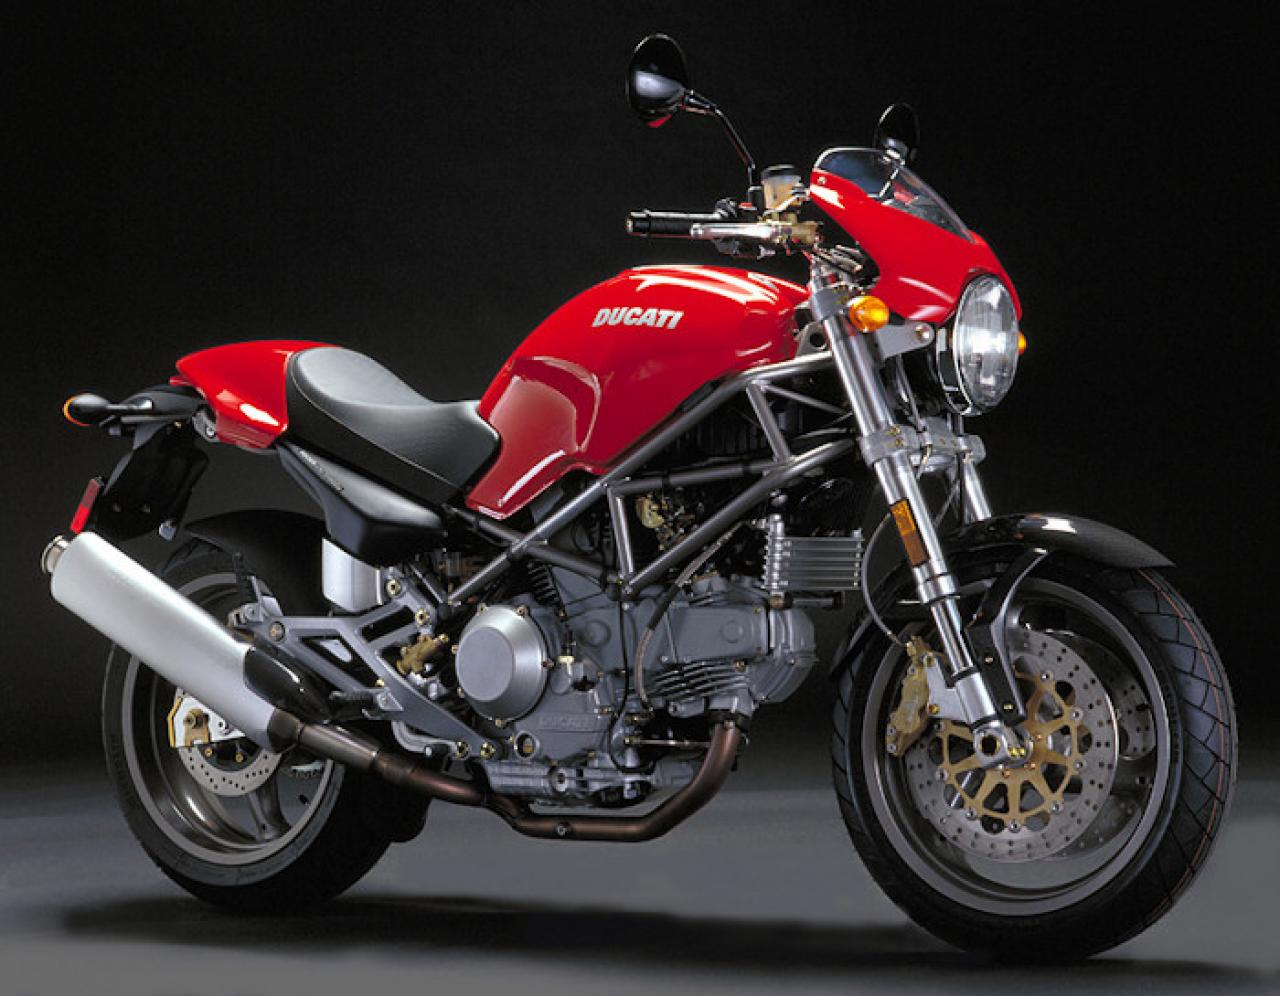 ducati ducati monster 900 i e moto zombdrive com. Black Bedroom Furniture Sets. Home Design Ideas